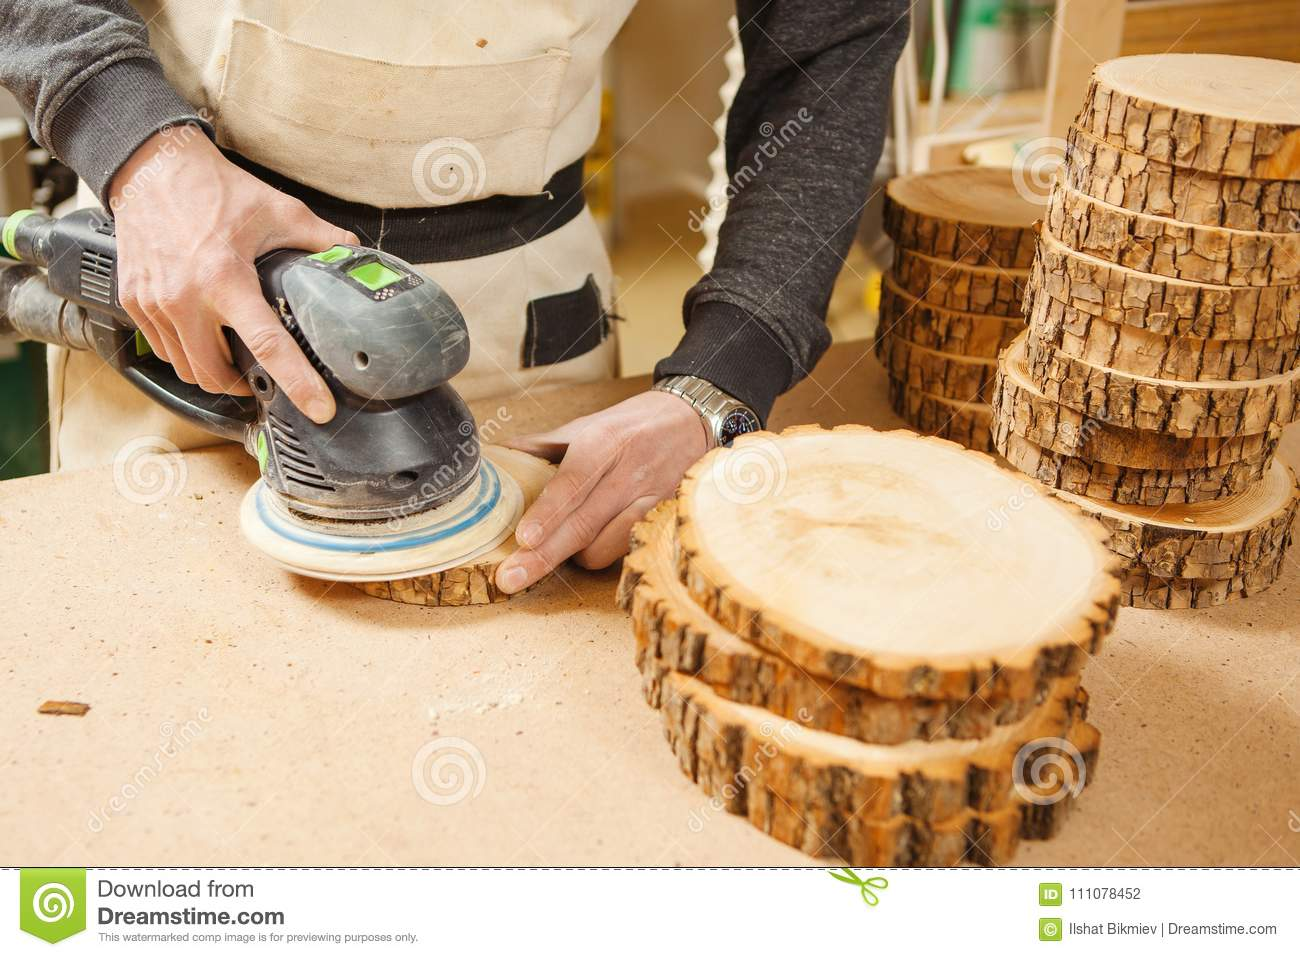 Male Holding Wooden Round Workpiece And Processing With Grinding